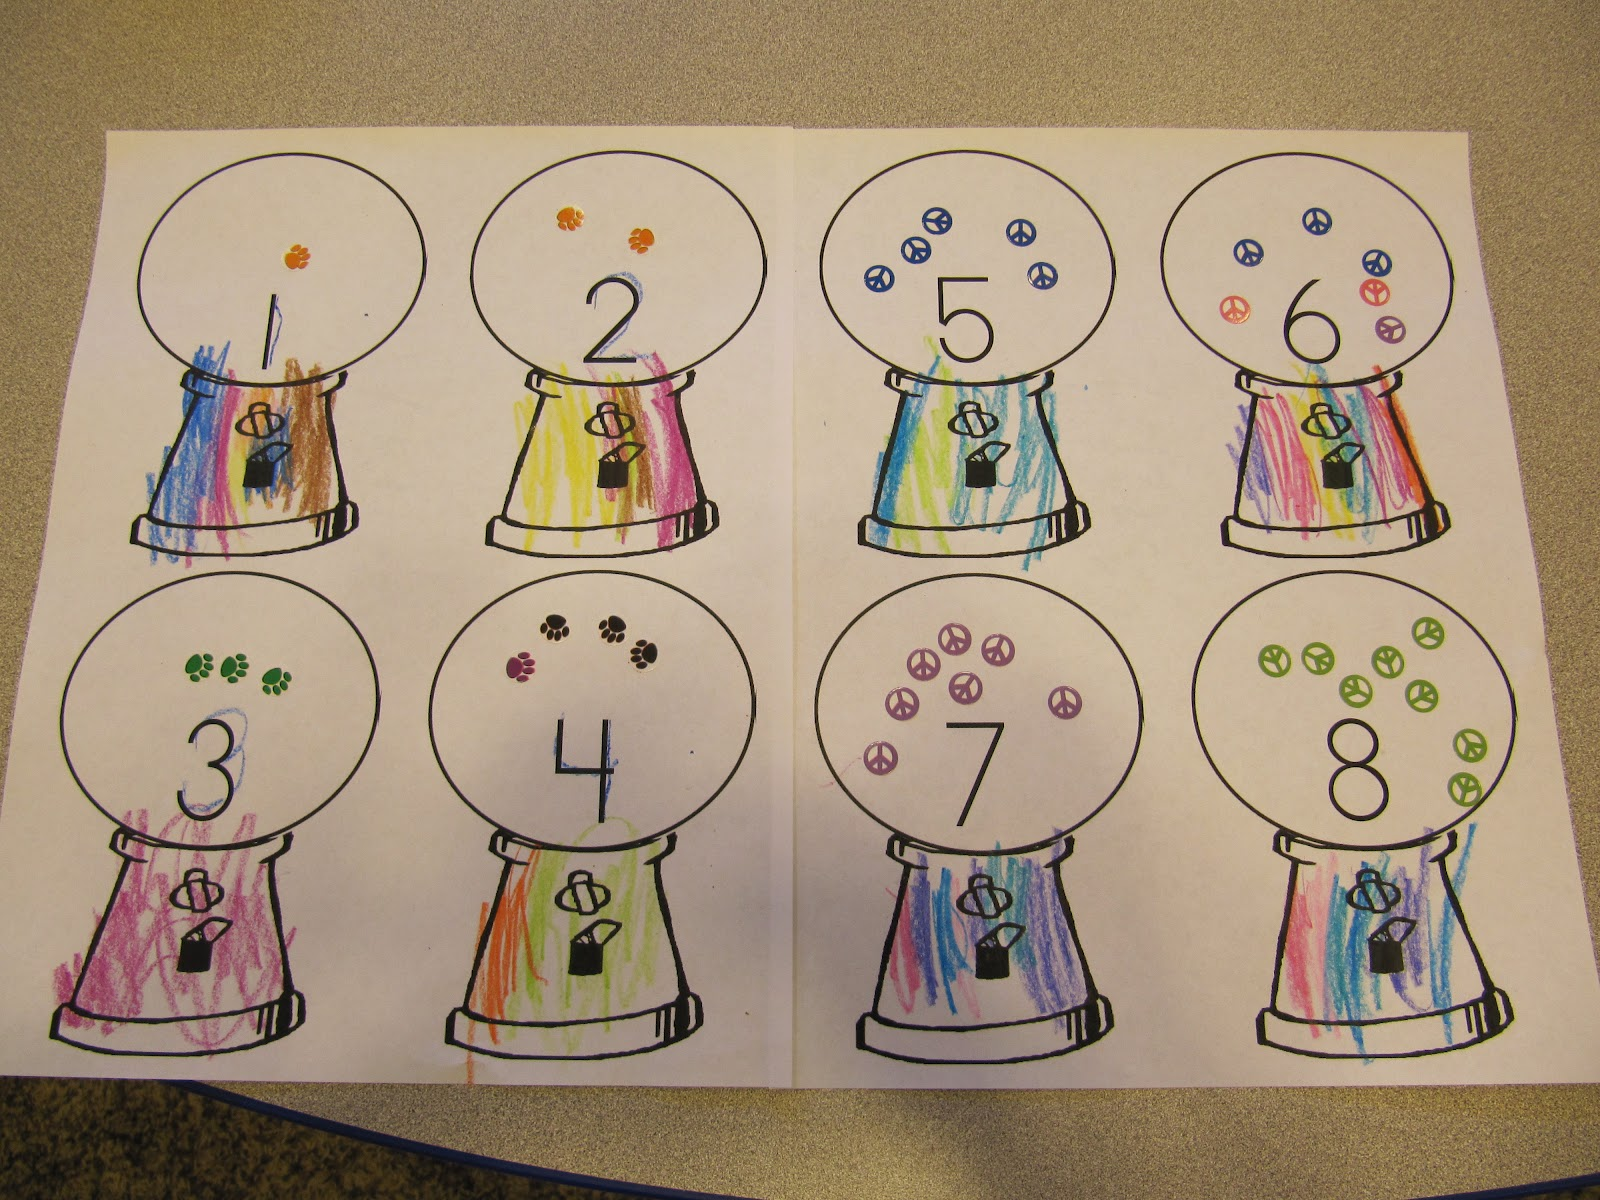 Preschool Letter G Gumball Machine Worksheet